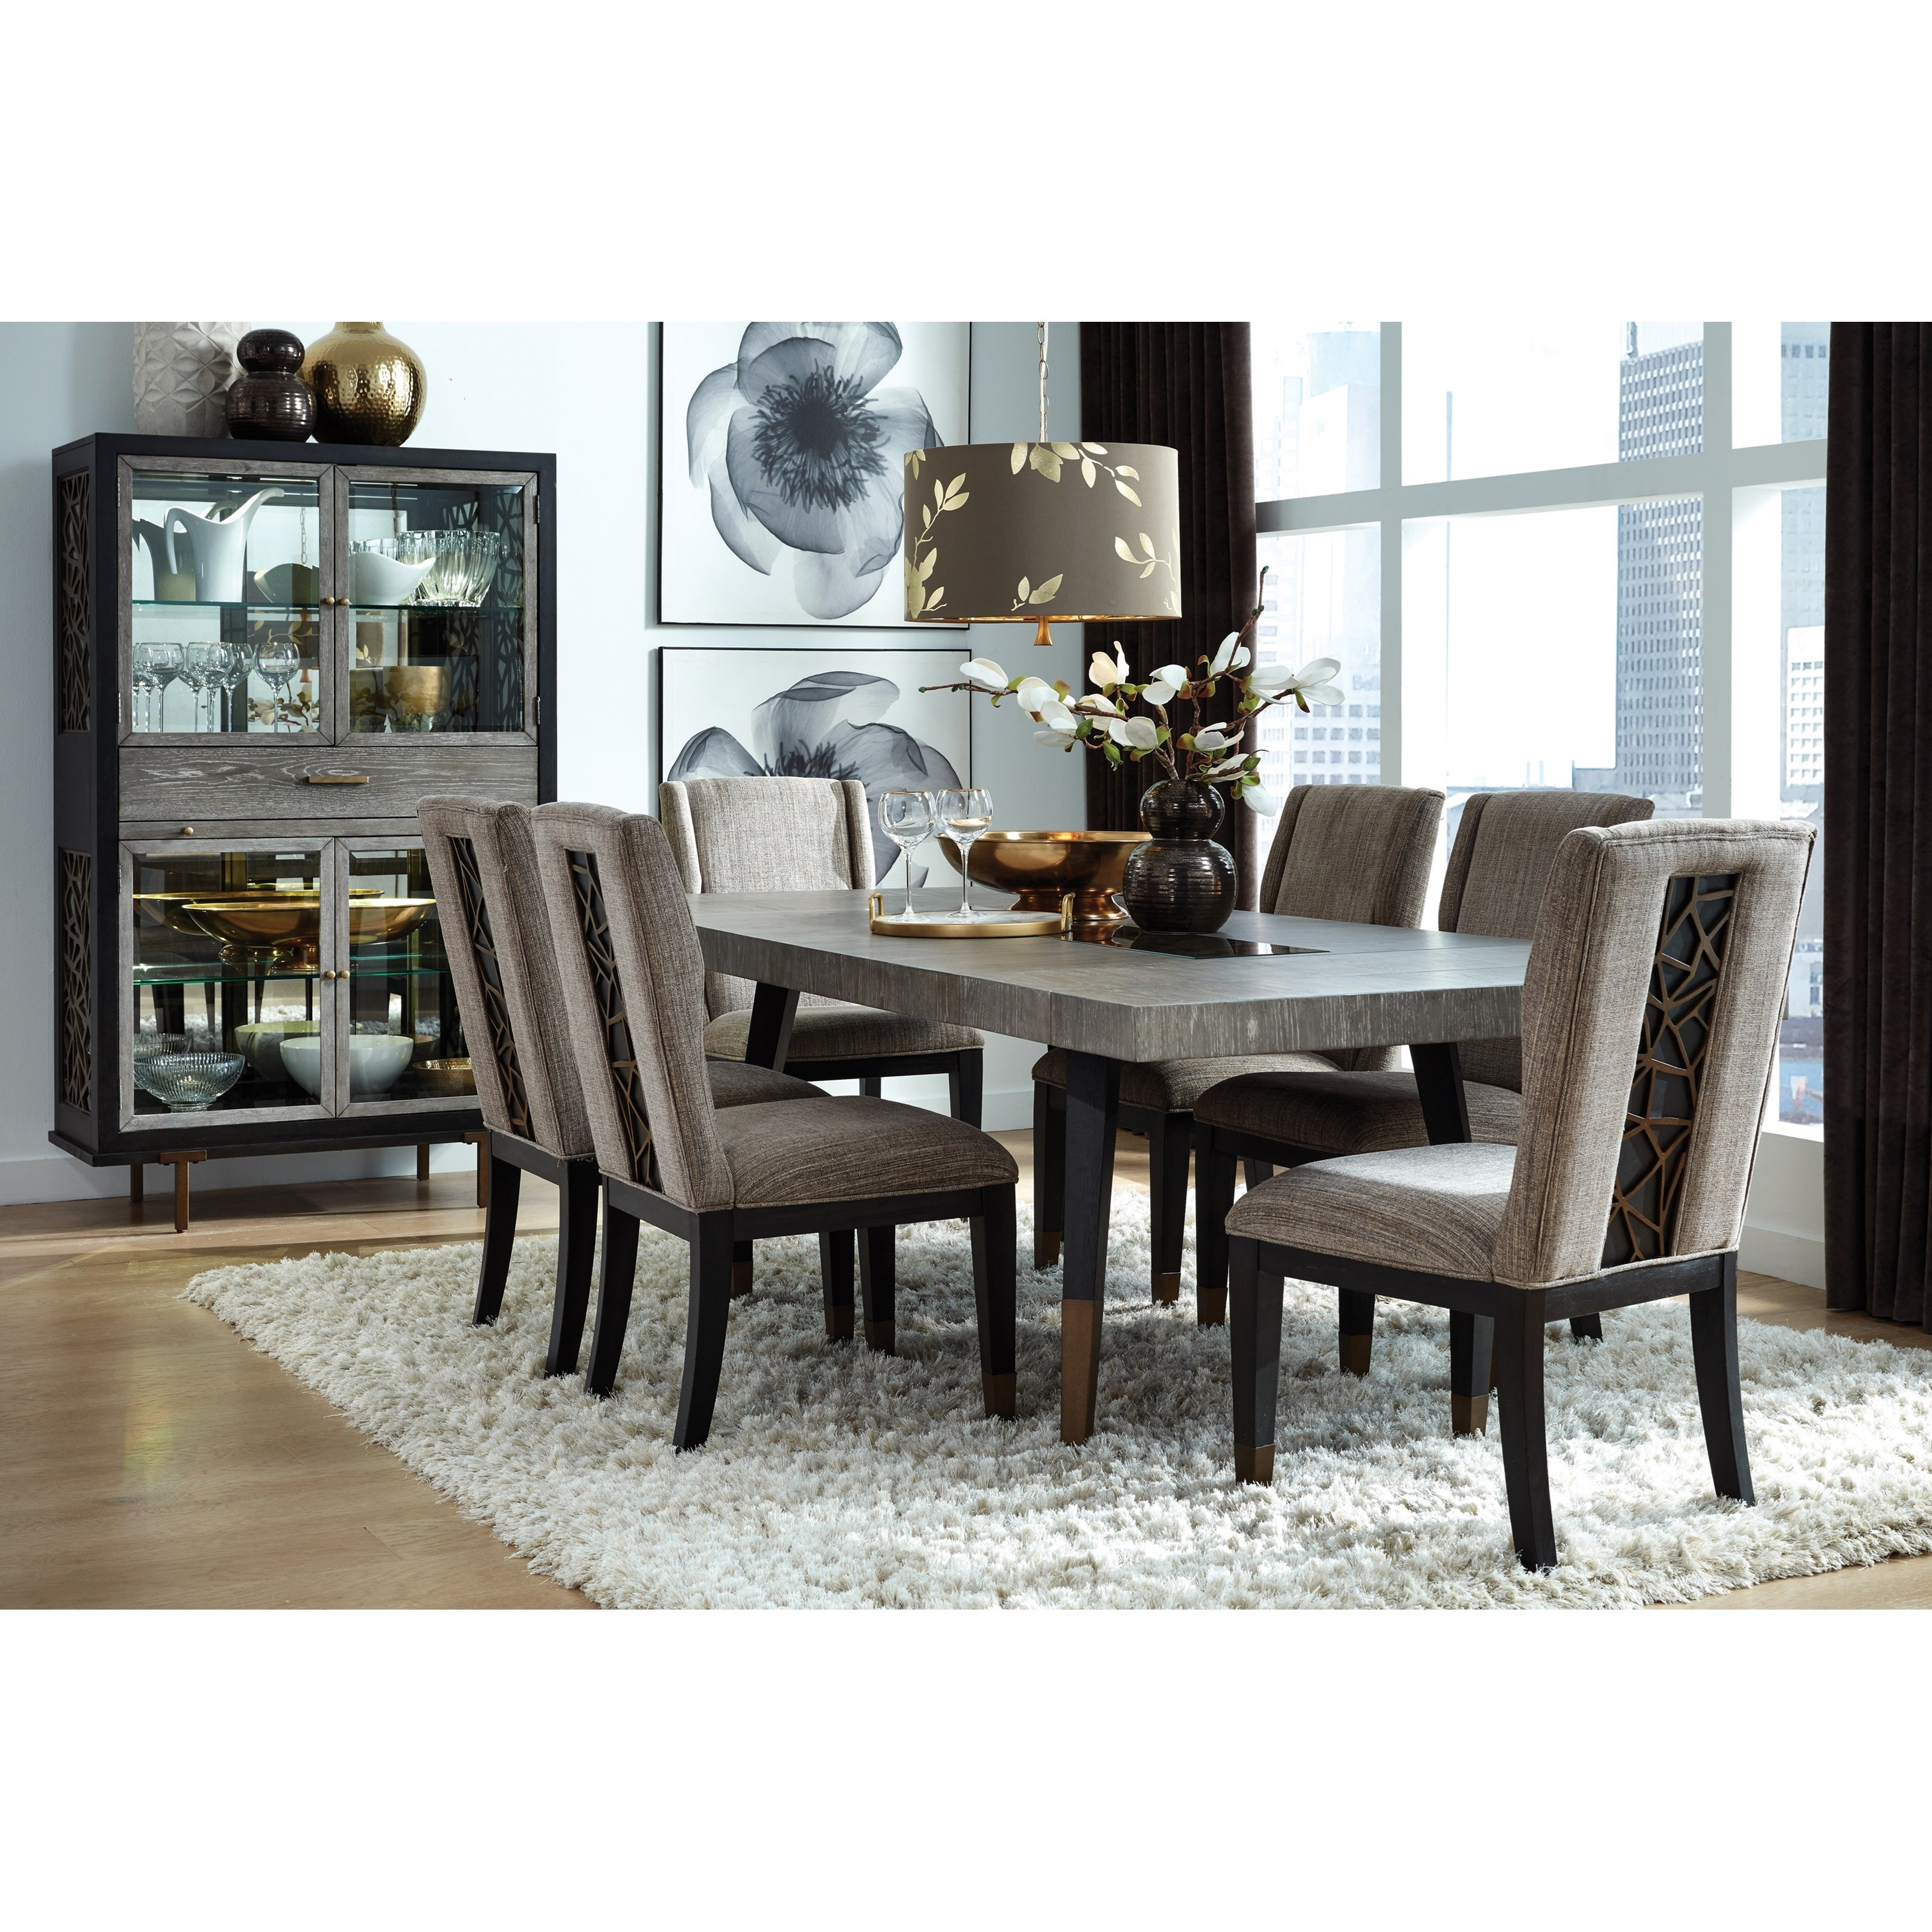 Ryker 7-Piece Dining Set by Magnussen Home at Darvin Furniture